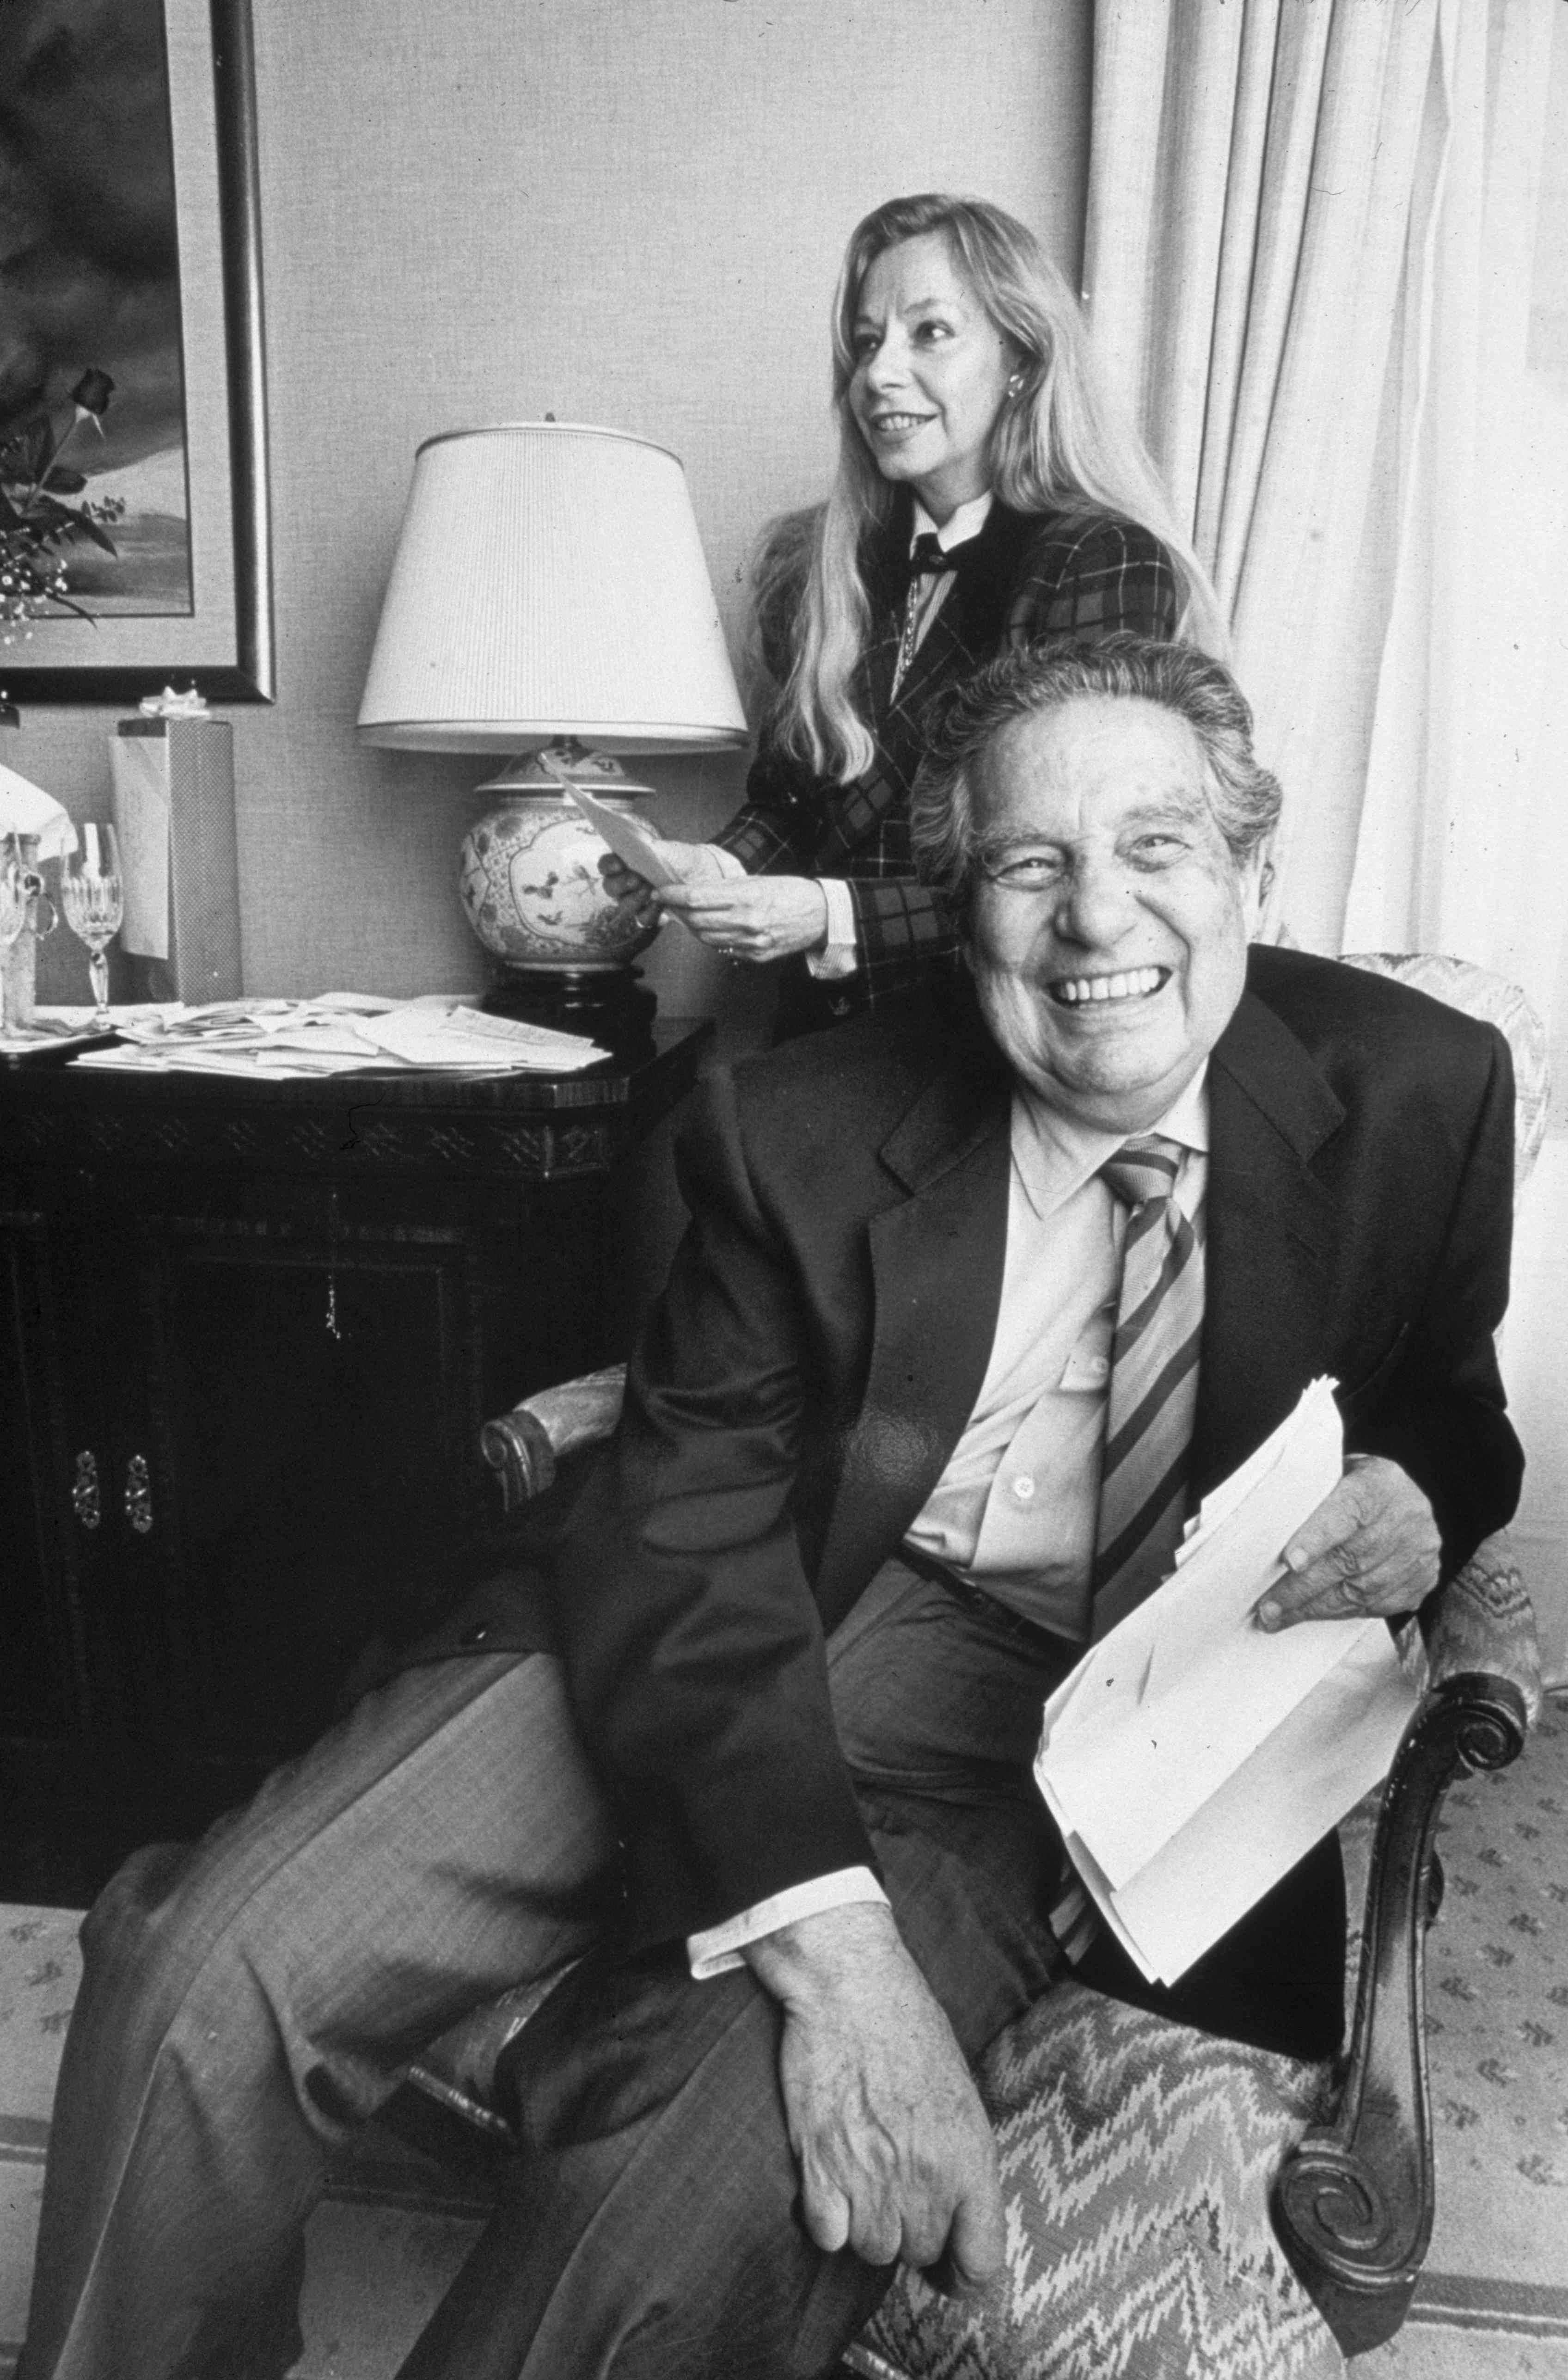 Octavio Paz with his wife Marie-José after winning the Nobel Prize